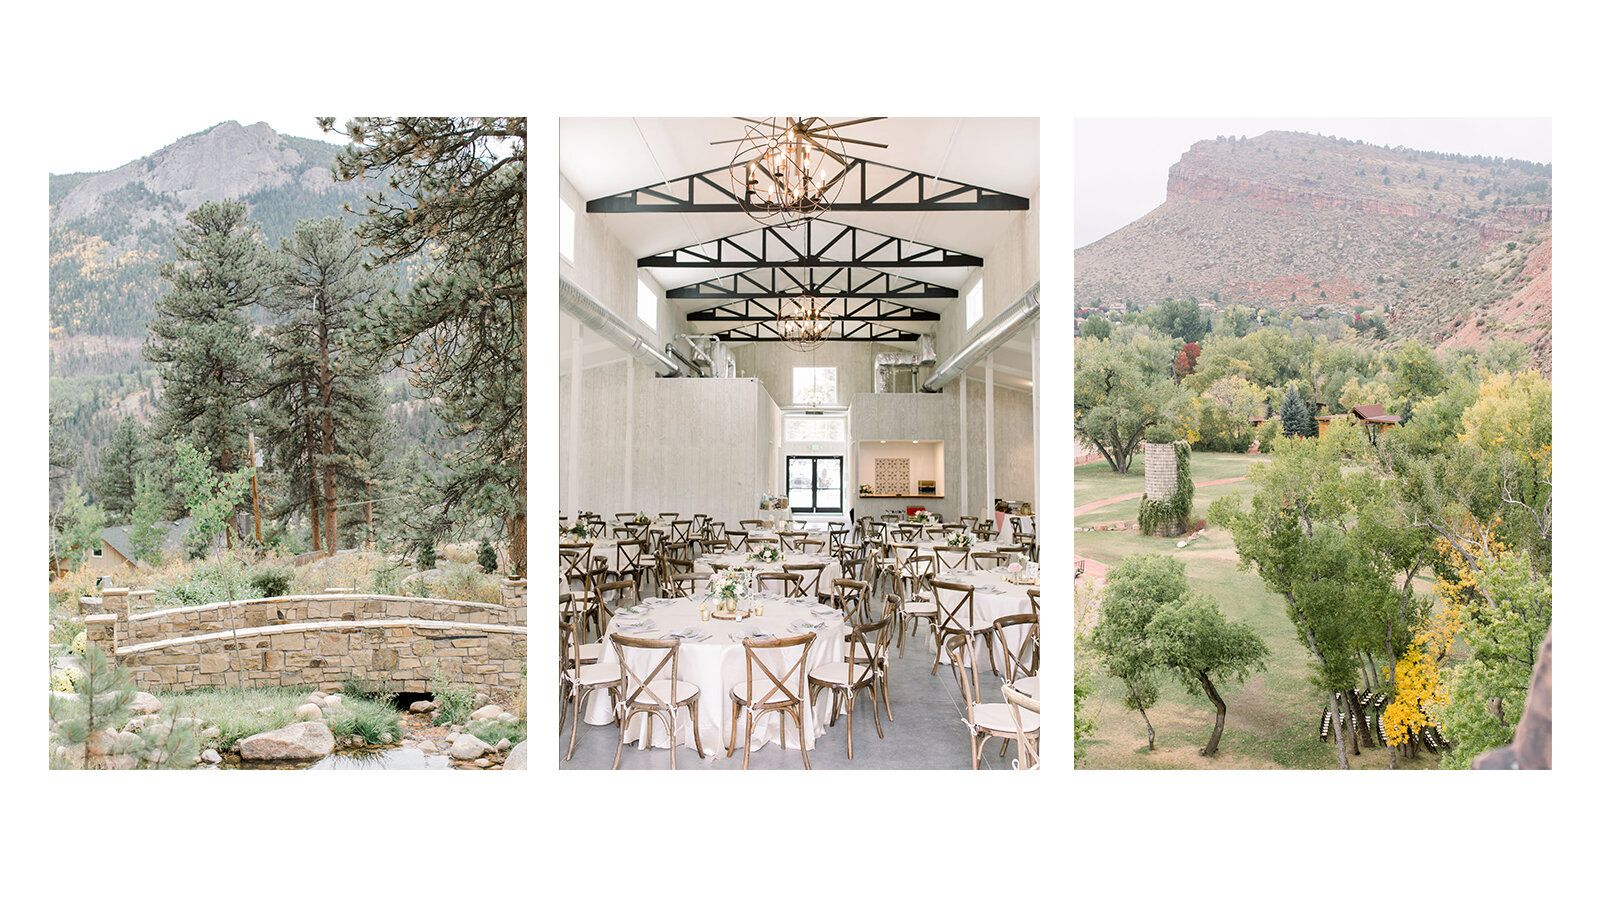 5 Wedding Venues Near Denver With Mountain Views Denver Personal Brand Photographer Mich In 2020 Barn Wedding Colorado Colorado Wedding Venues Denver Wedding Venue